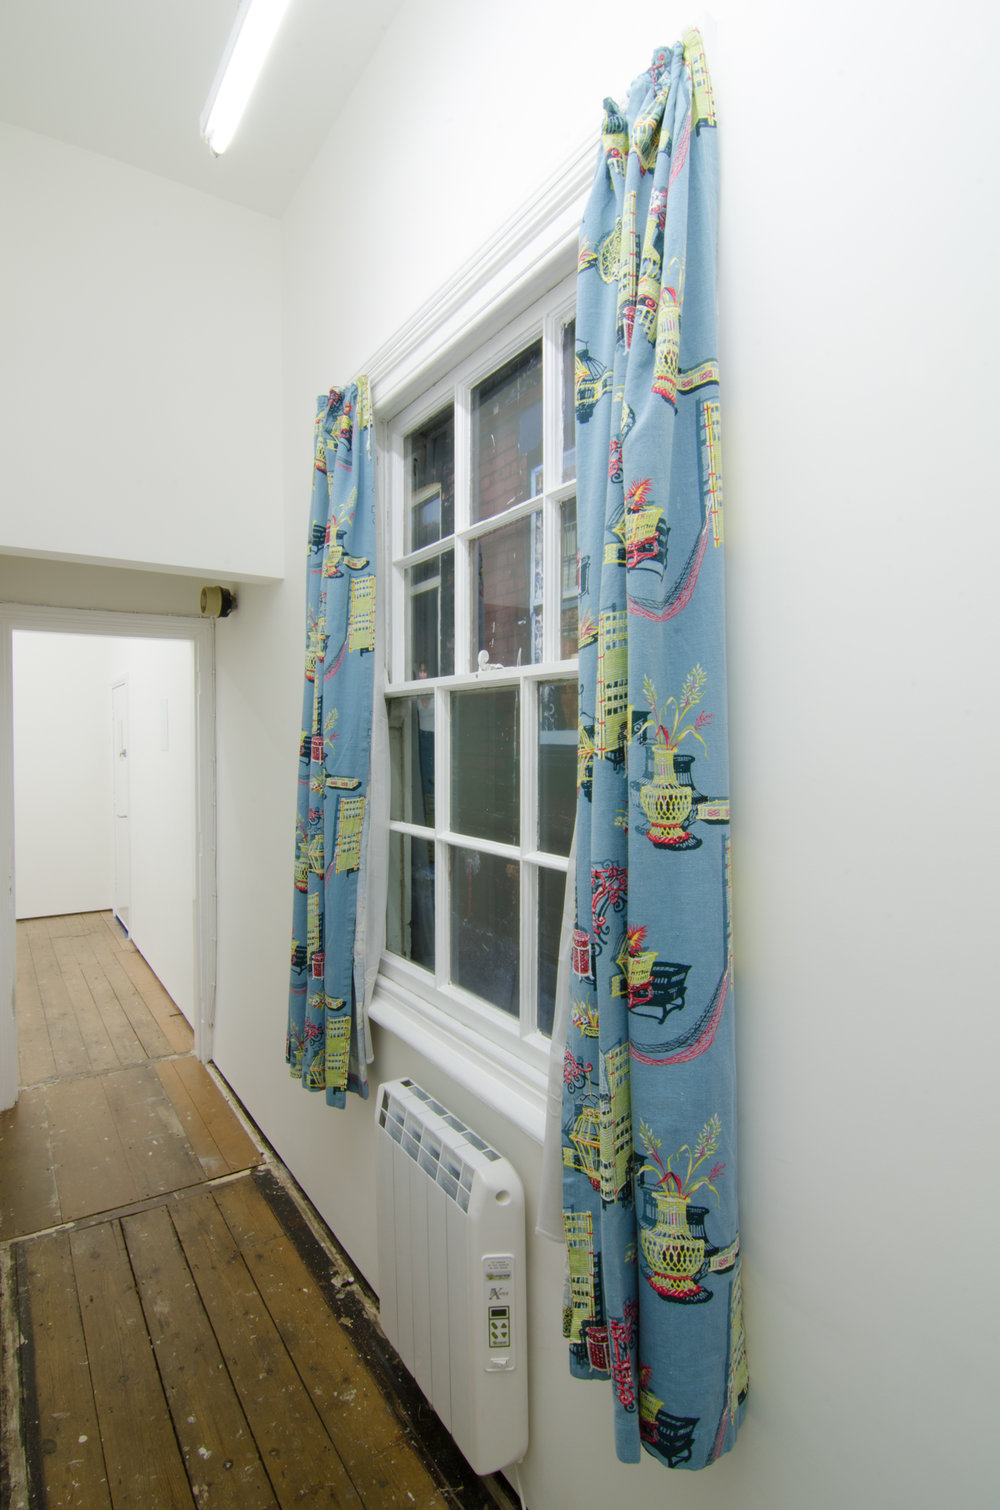 Andrew Munks  A window into 1976, streetview (Bulmer vision)  2016 Encapsulated inkjet print on wood panel, curtains, cable.